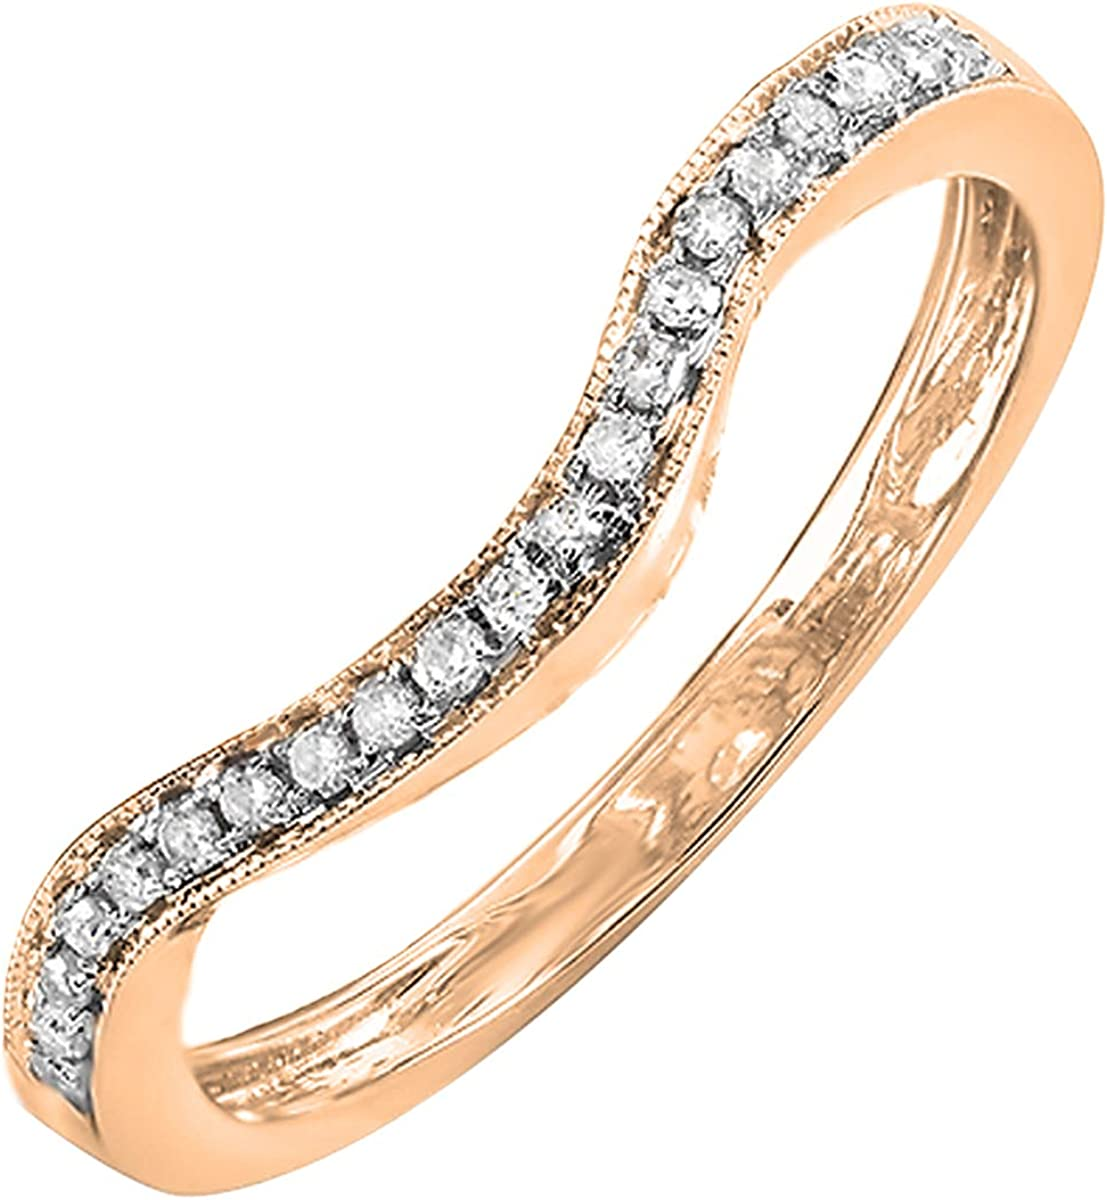 0.15 Carat (ctw) 14K Gold Round White Diamond Ladies Anniversary Stackable Band Contour Guard Ring